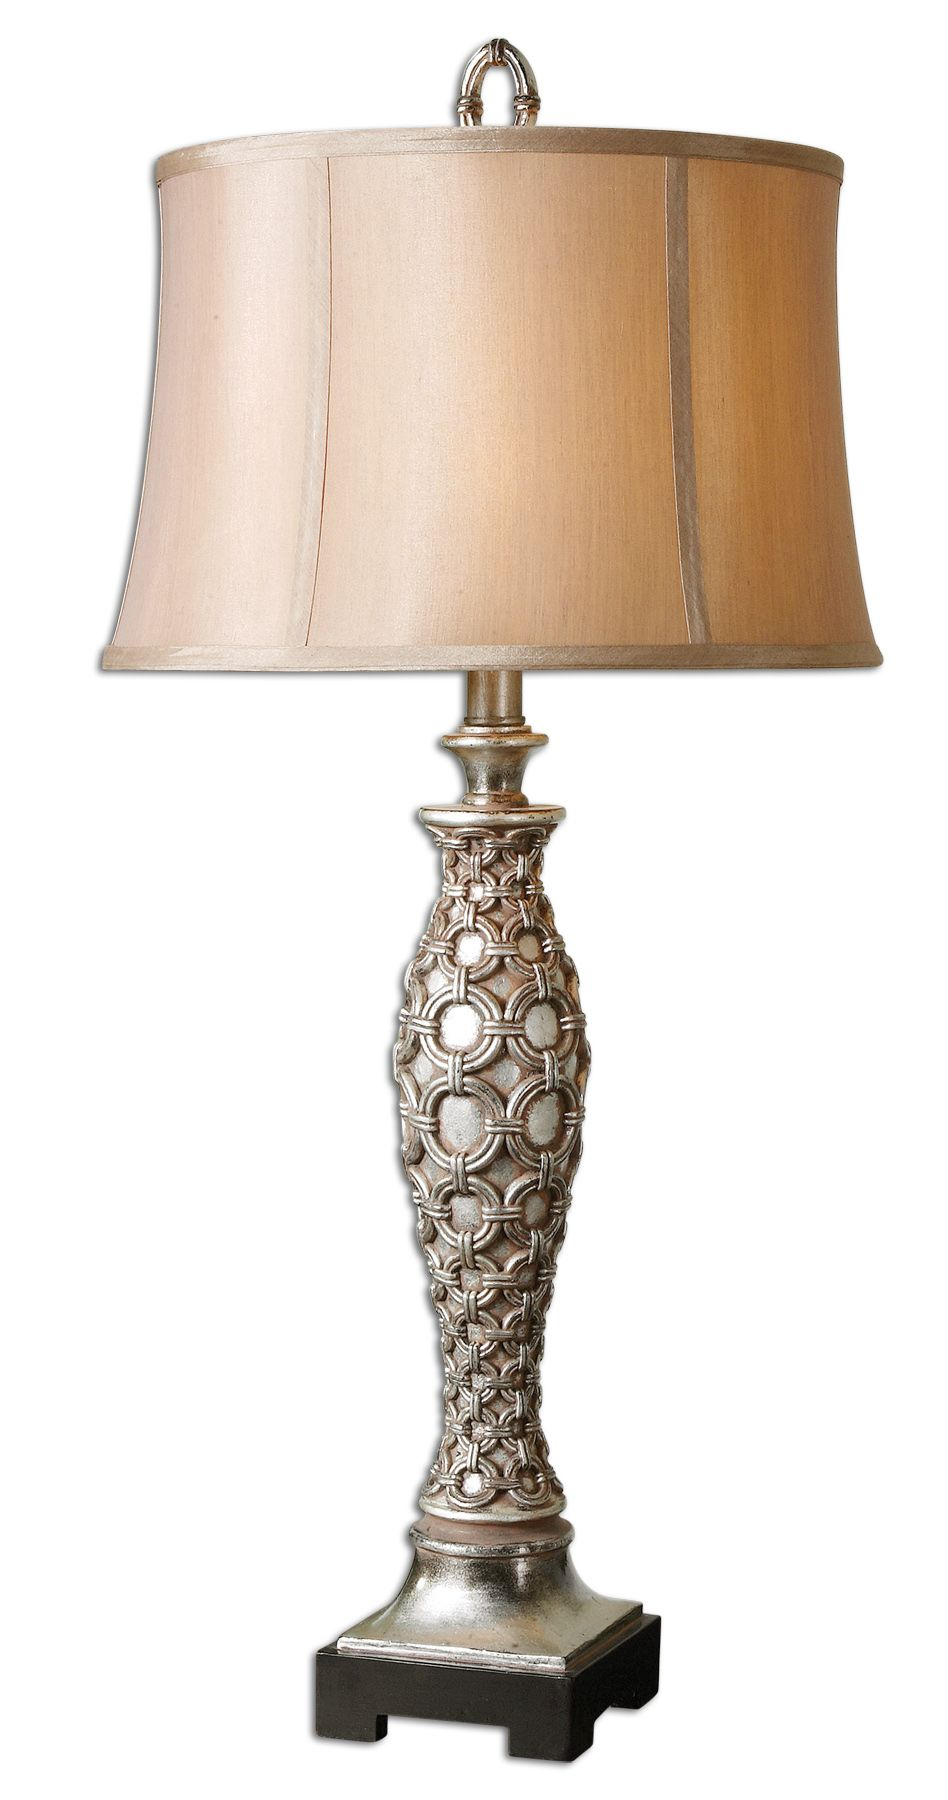 Silver Table Lamps : Uttermost 27372 Cunico Silver Table Lamp $248.60 -